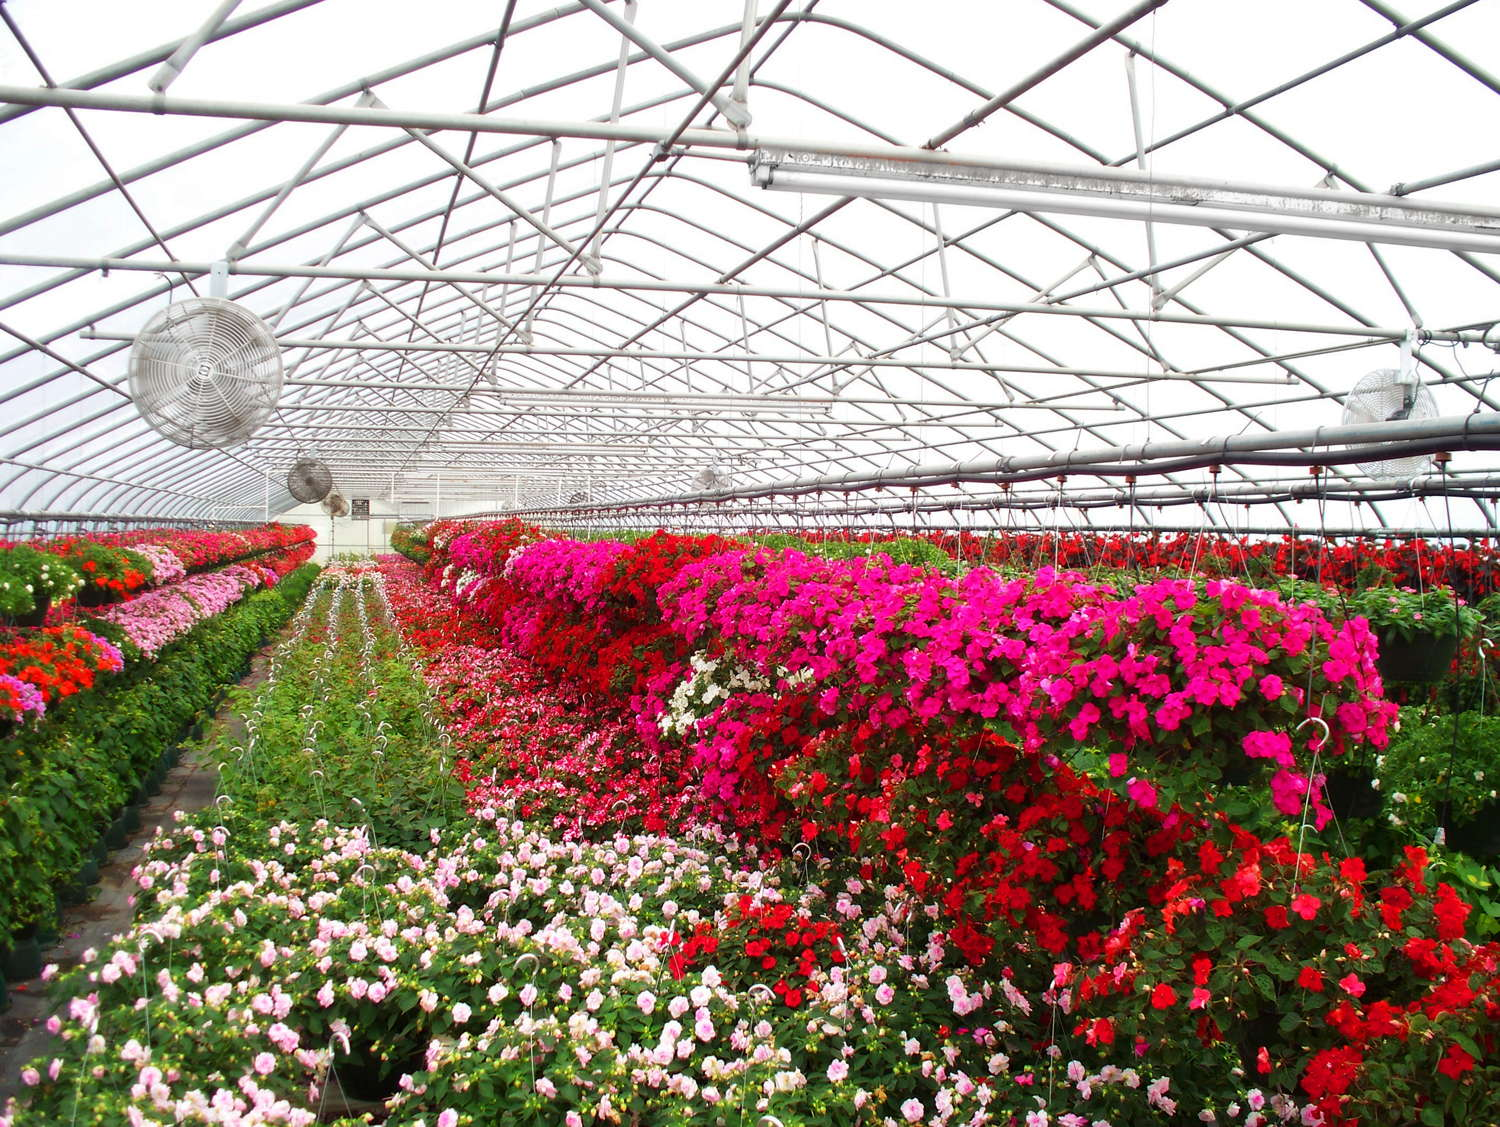 Grow Ornamentals, Vegetables Under One Roof With Atlas Manufacturing